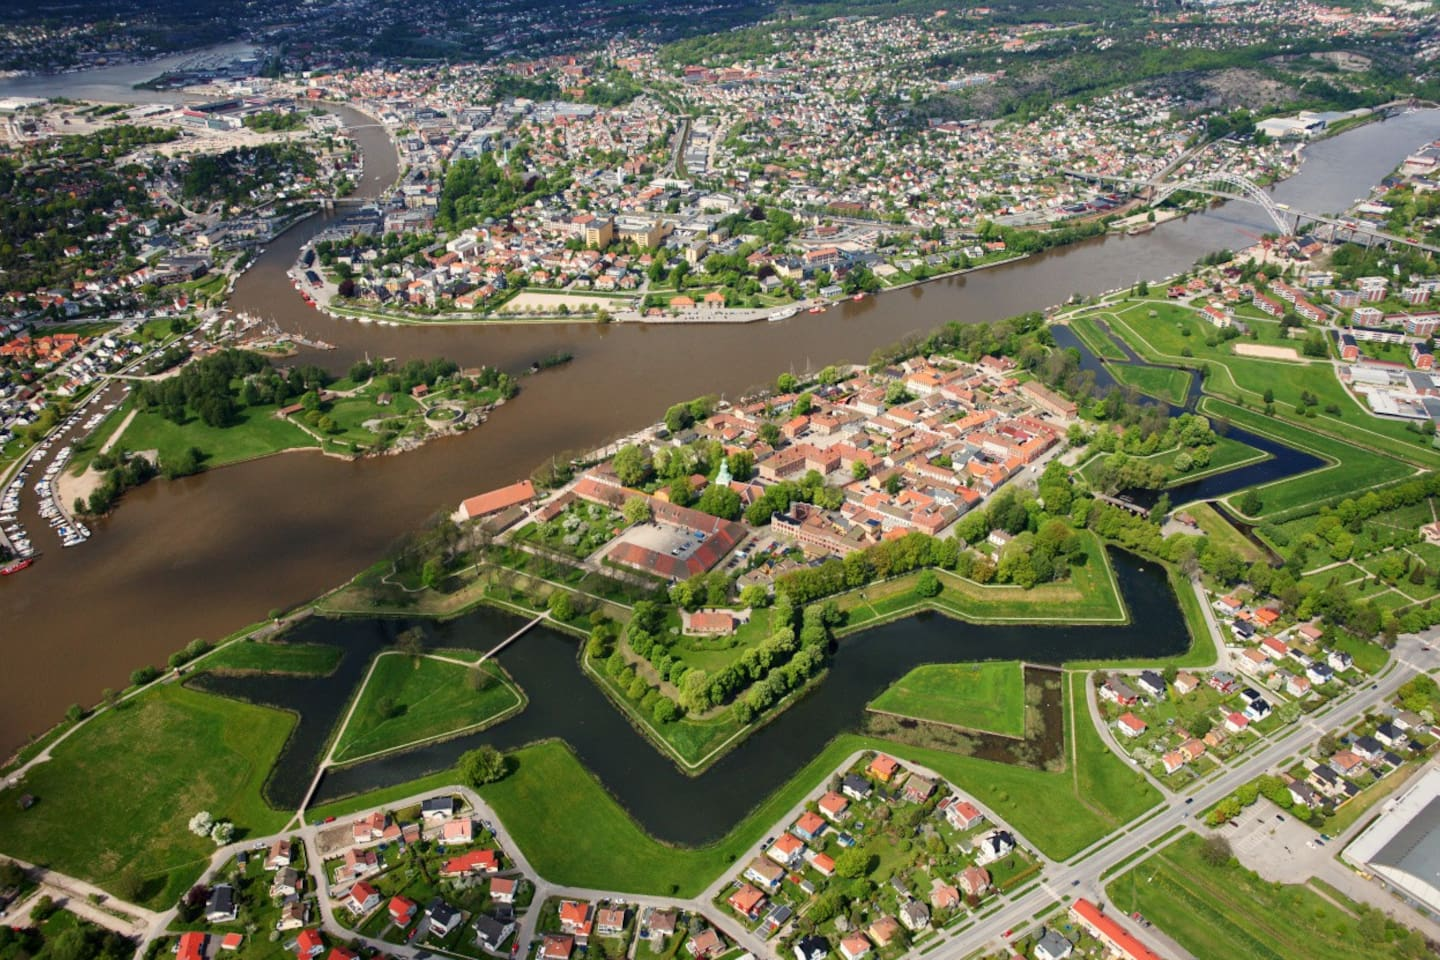 Fredrikstad and the star moats of the Old Town